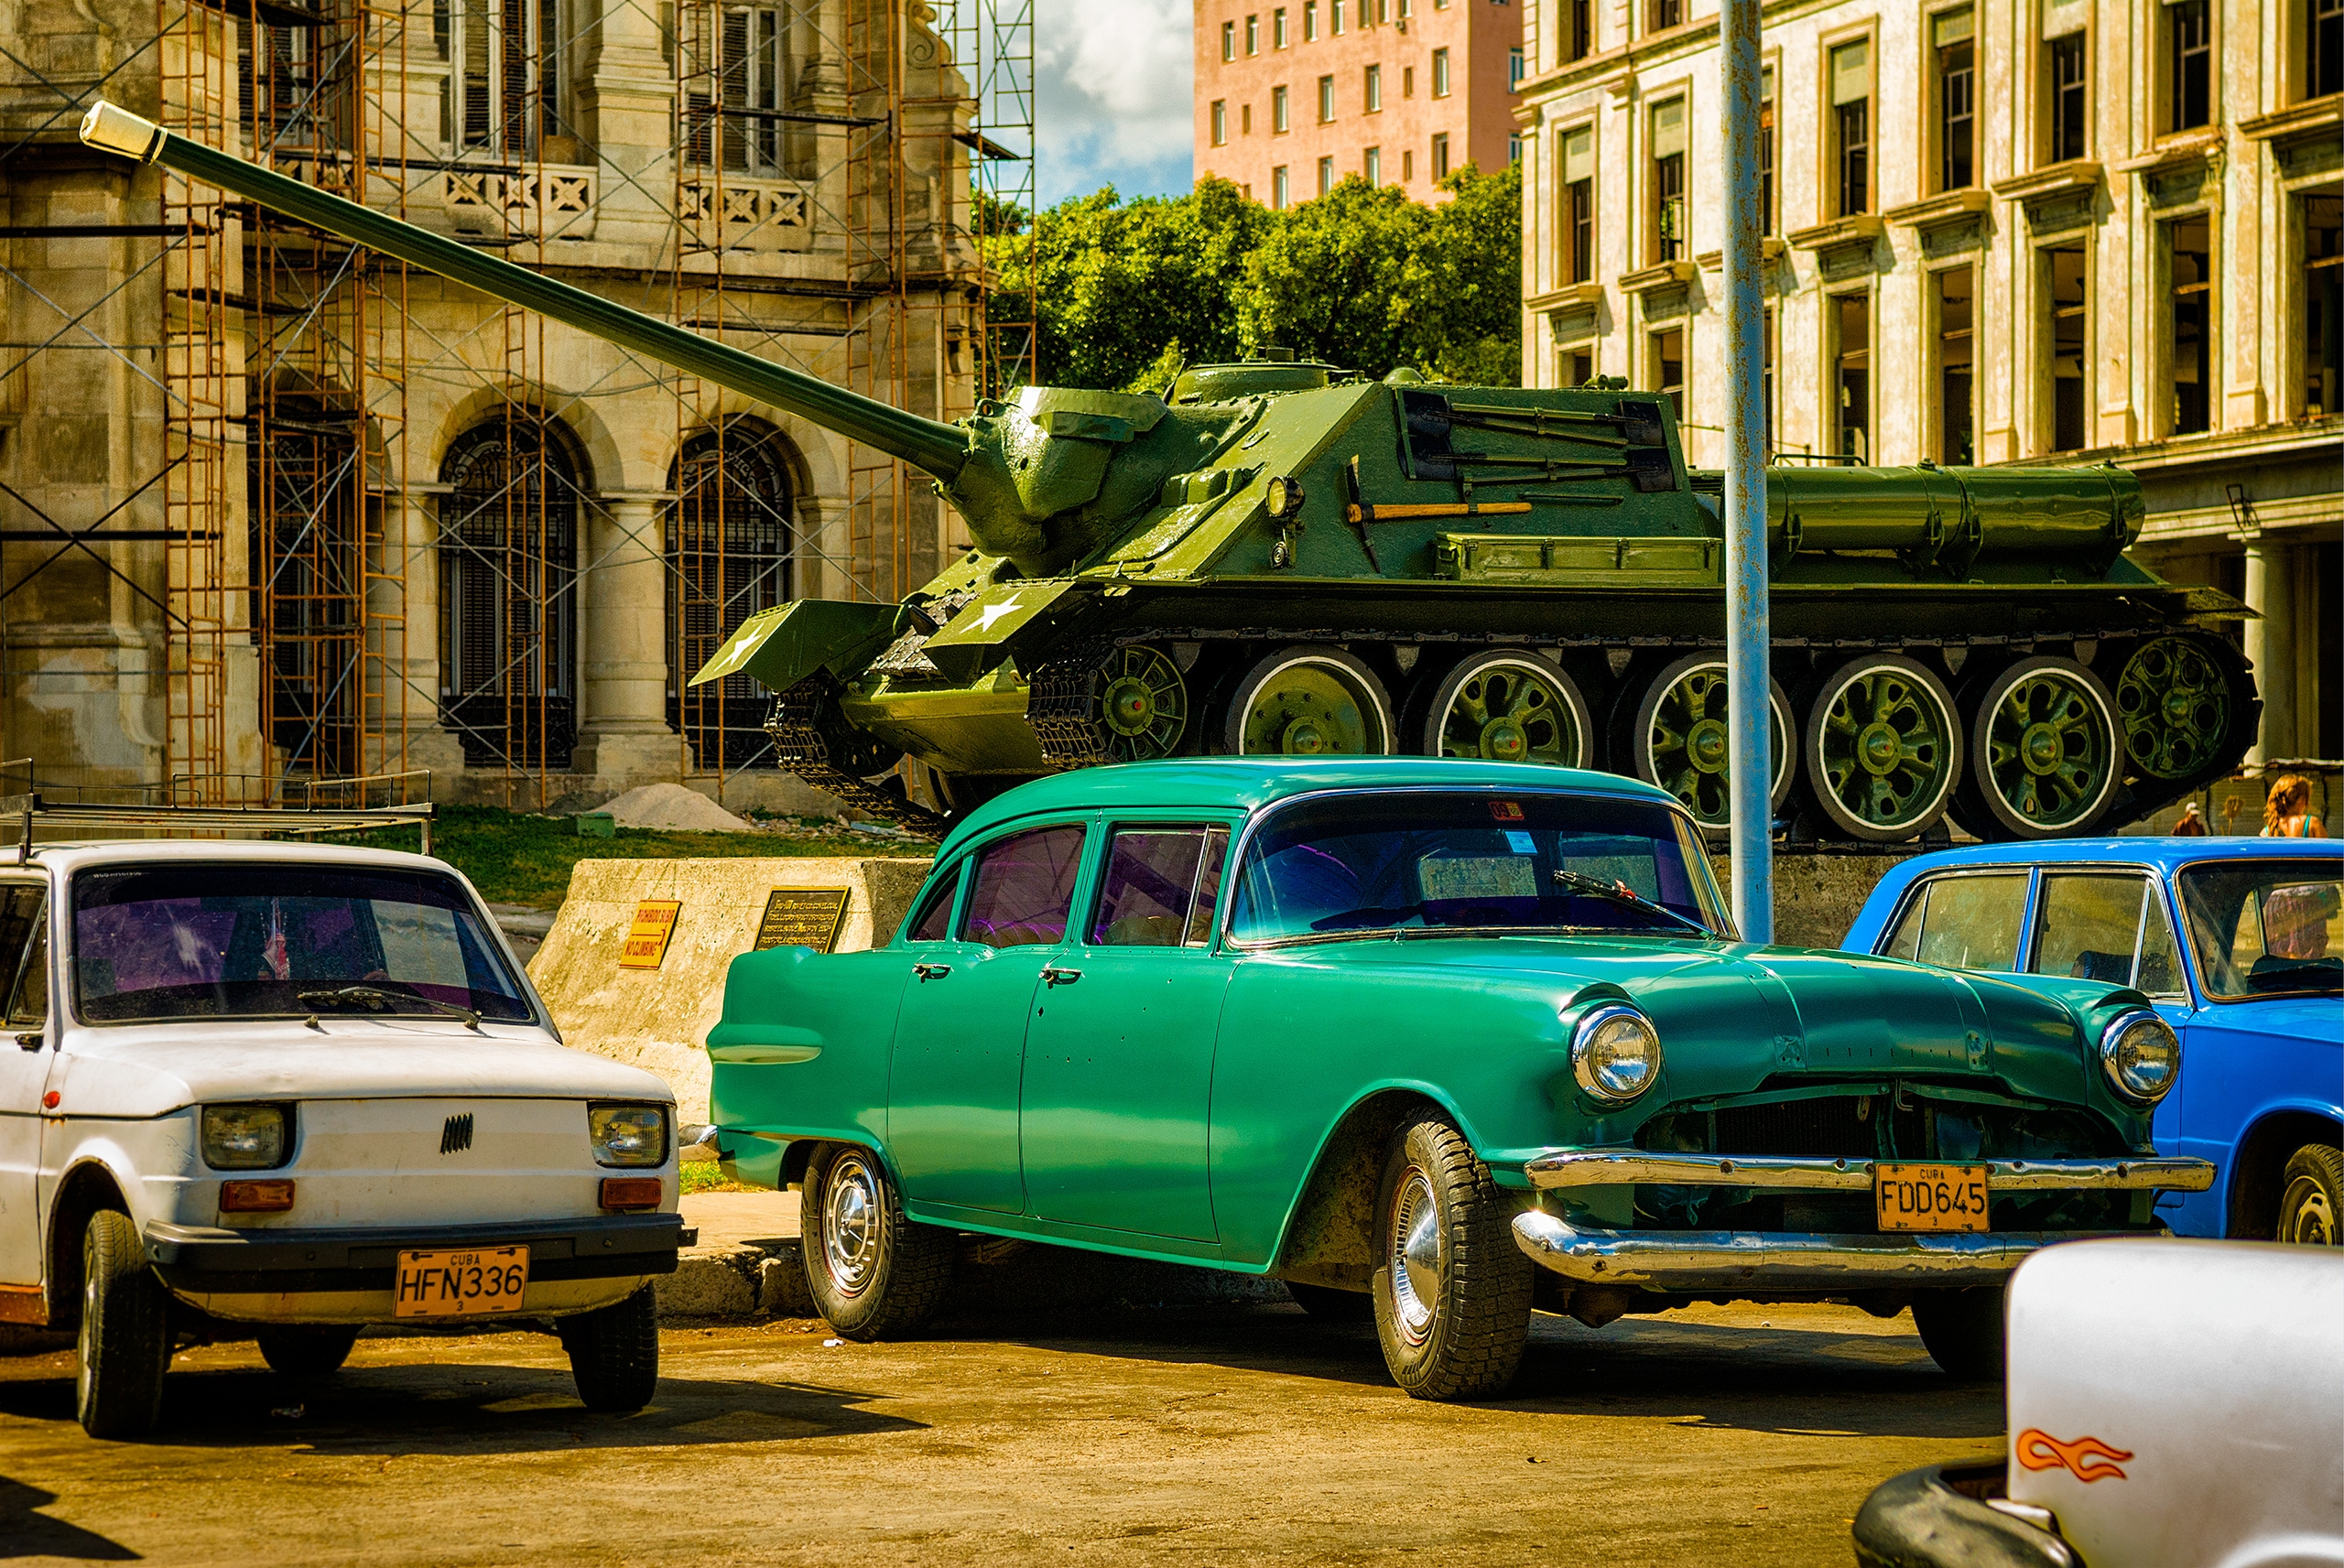 big green machines - Habana, Cuba - christofkessemeier | ello